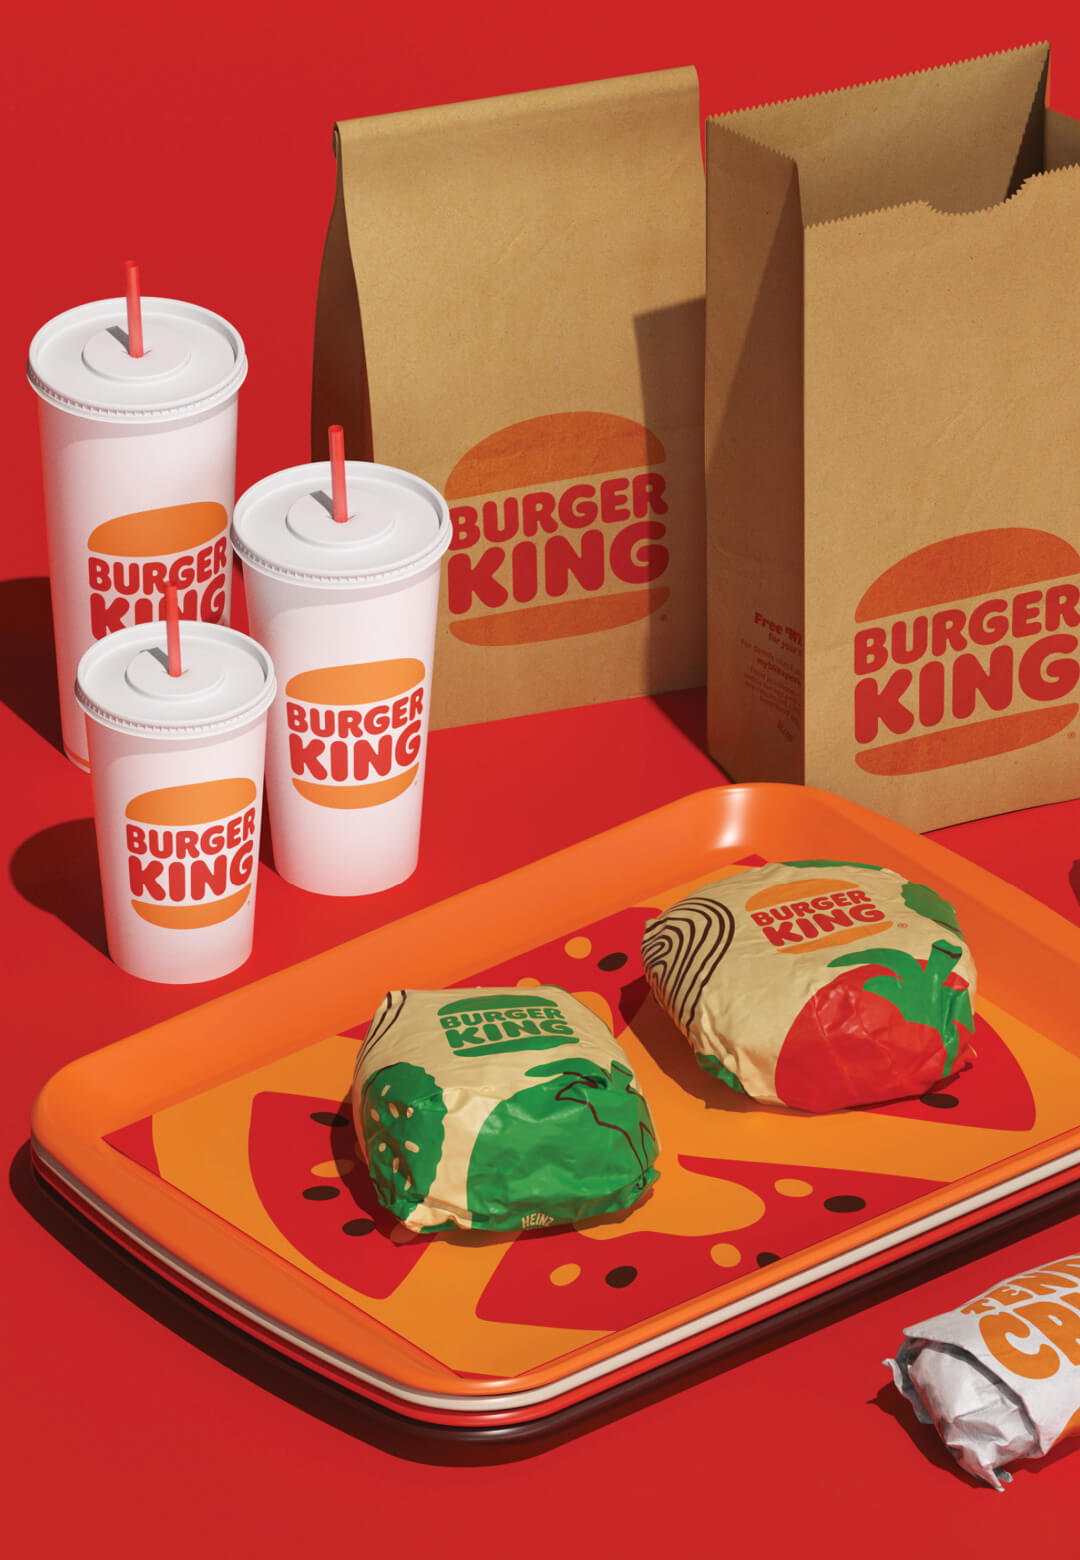 Burger King introduces its first visual rebrand in 20 years | Burger King Rebranding | Jones Knowles Ritchie | STIRworld